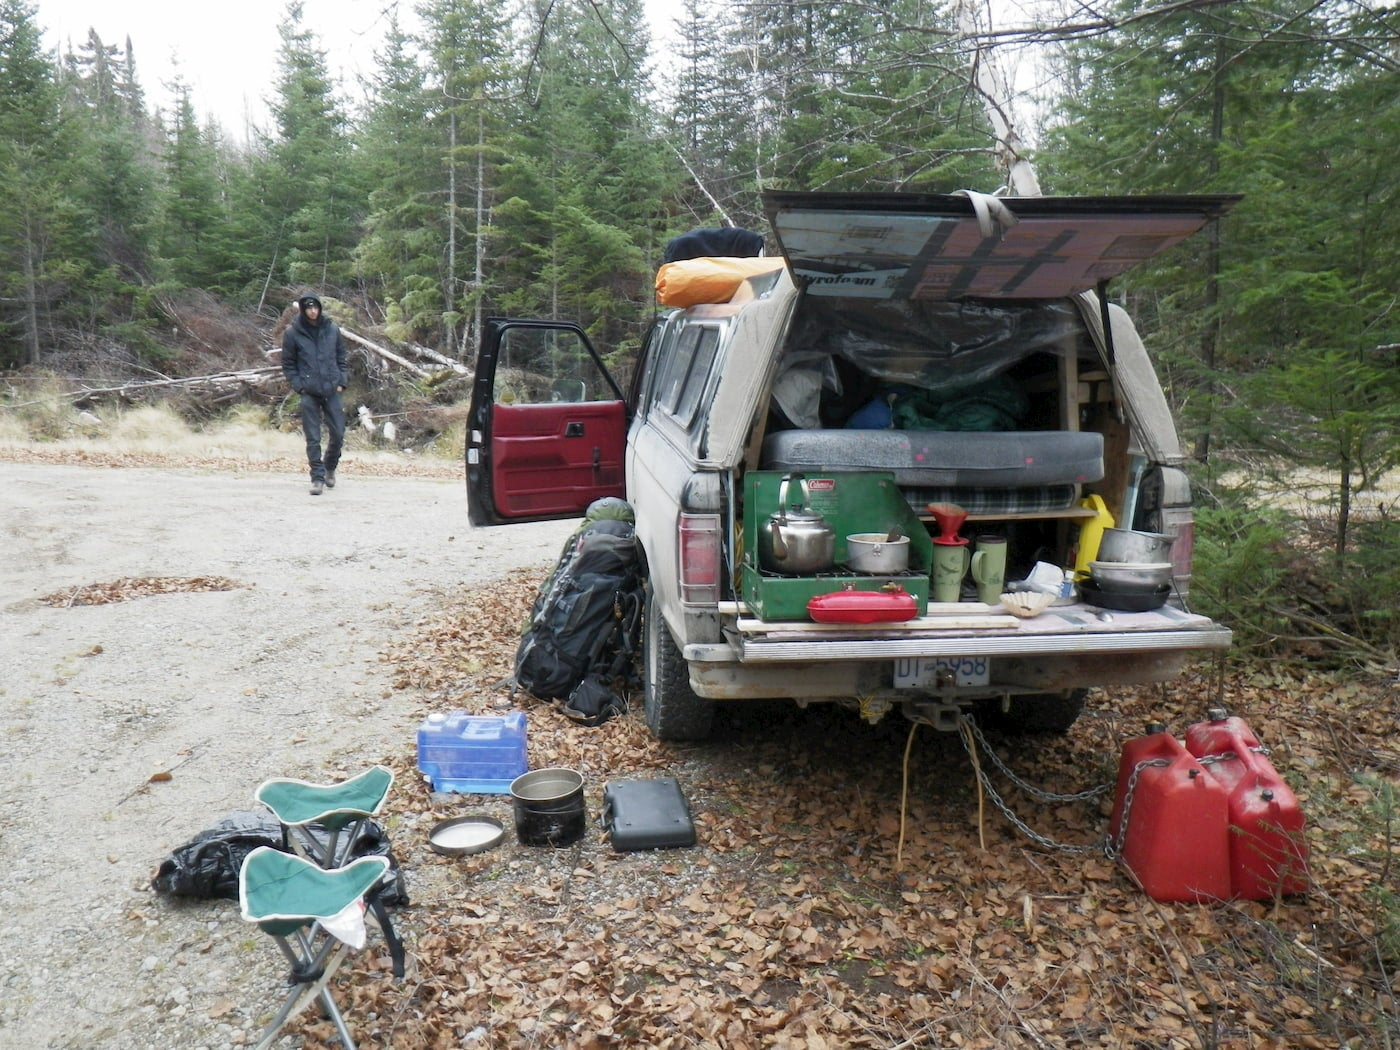 Build out bed and stove in the back of a car camper conversion